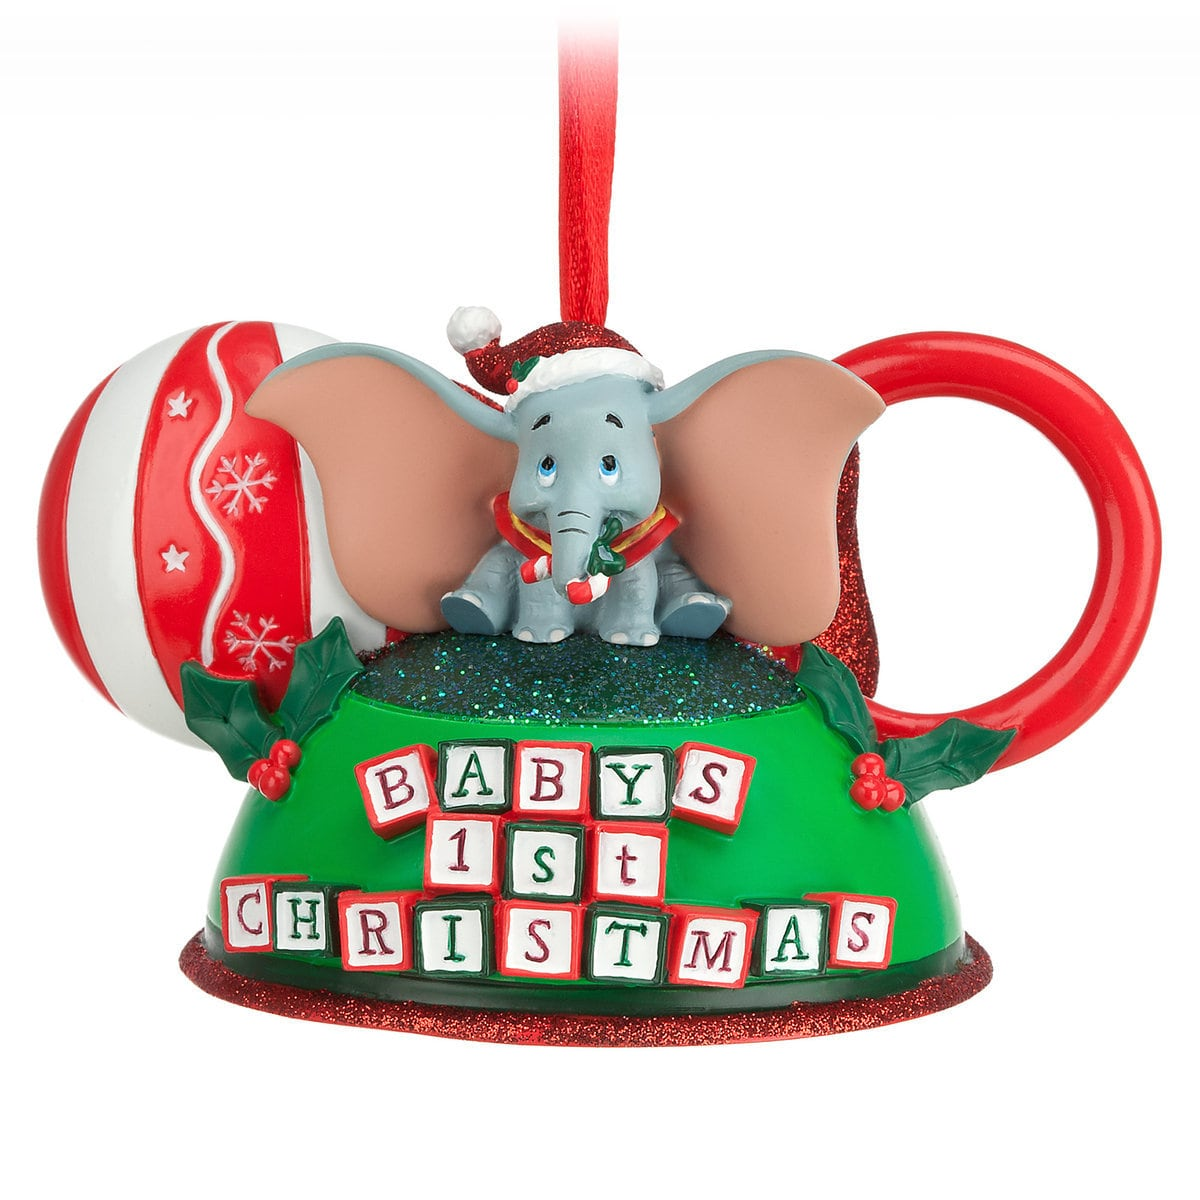 Top 25 Disney Gift Ideas for Babies featured by top US Disney blogger, Marcie and the Mouse: Baby's first Christmas ornament